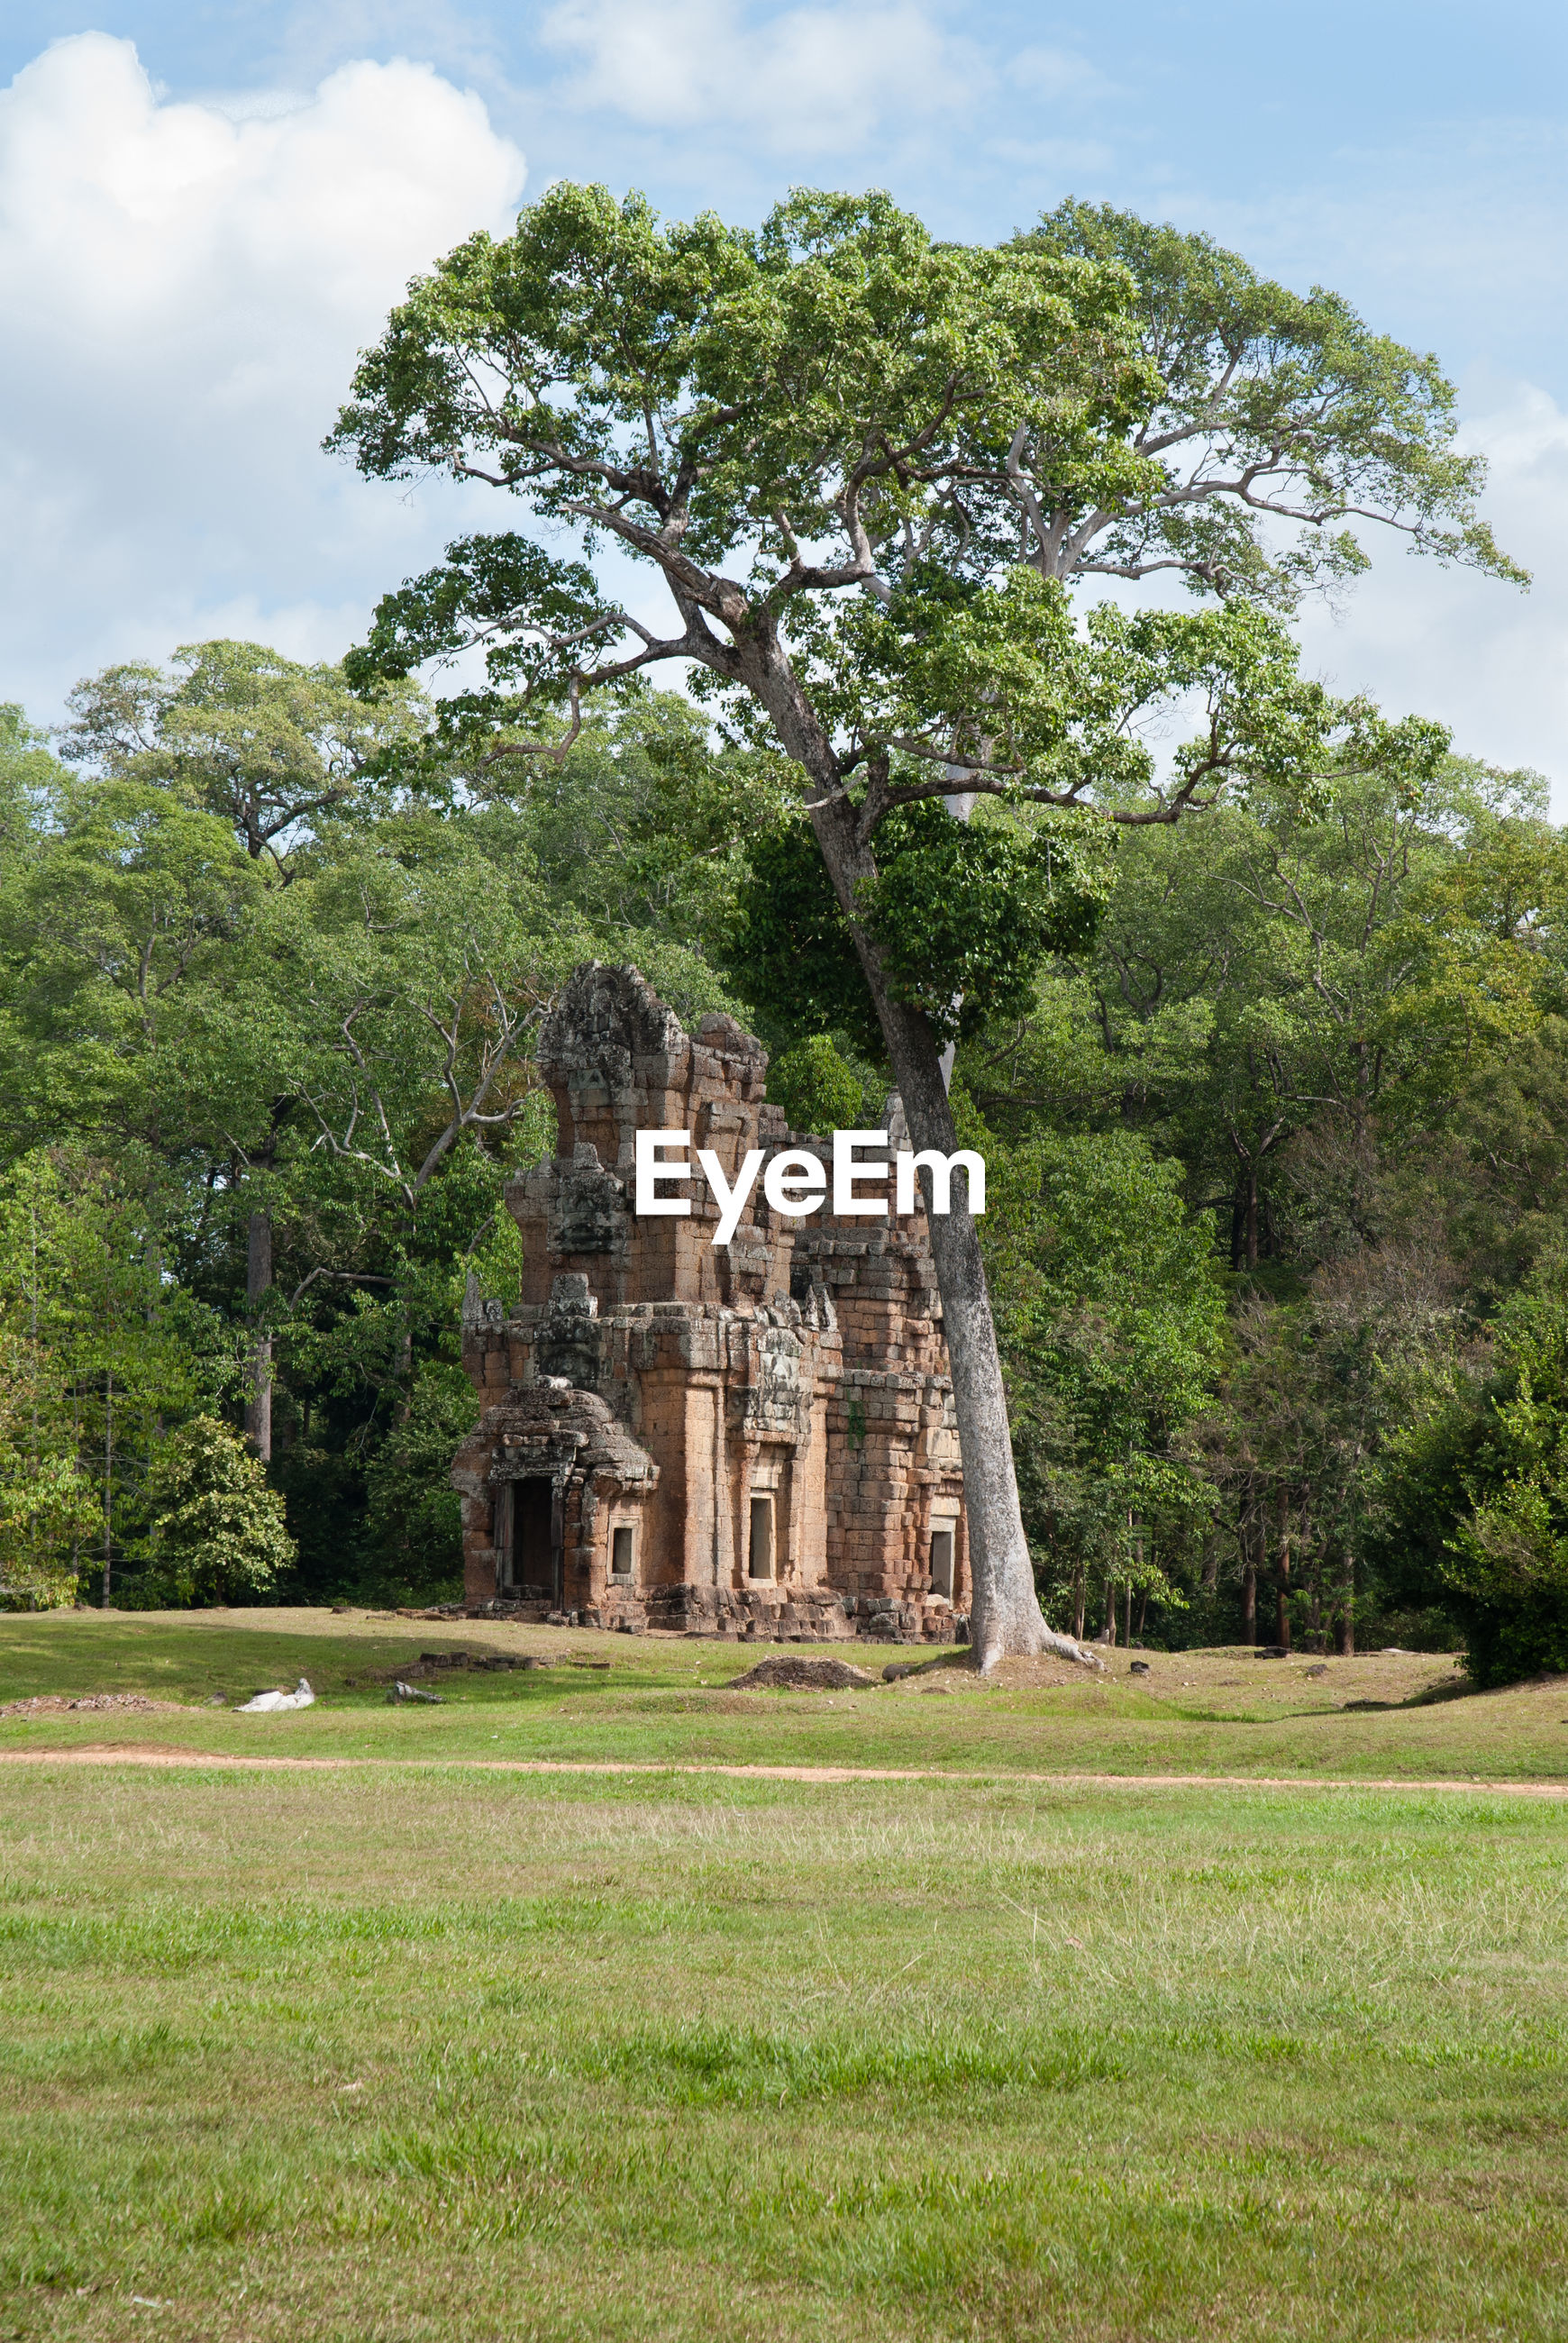 Old ruin on field against trees